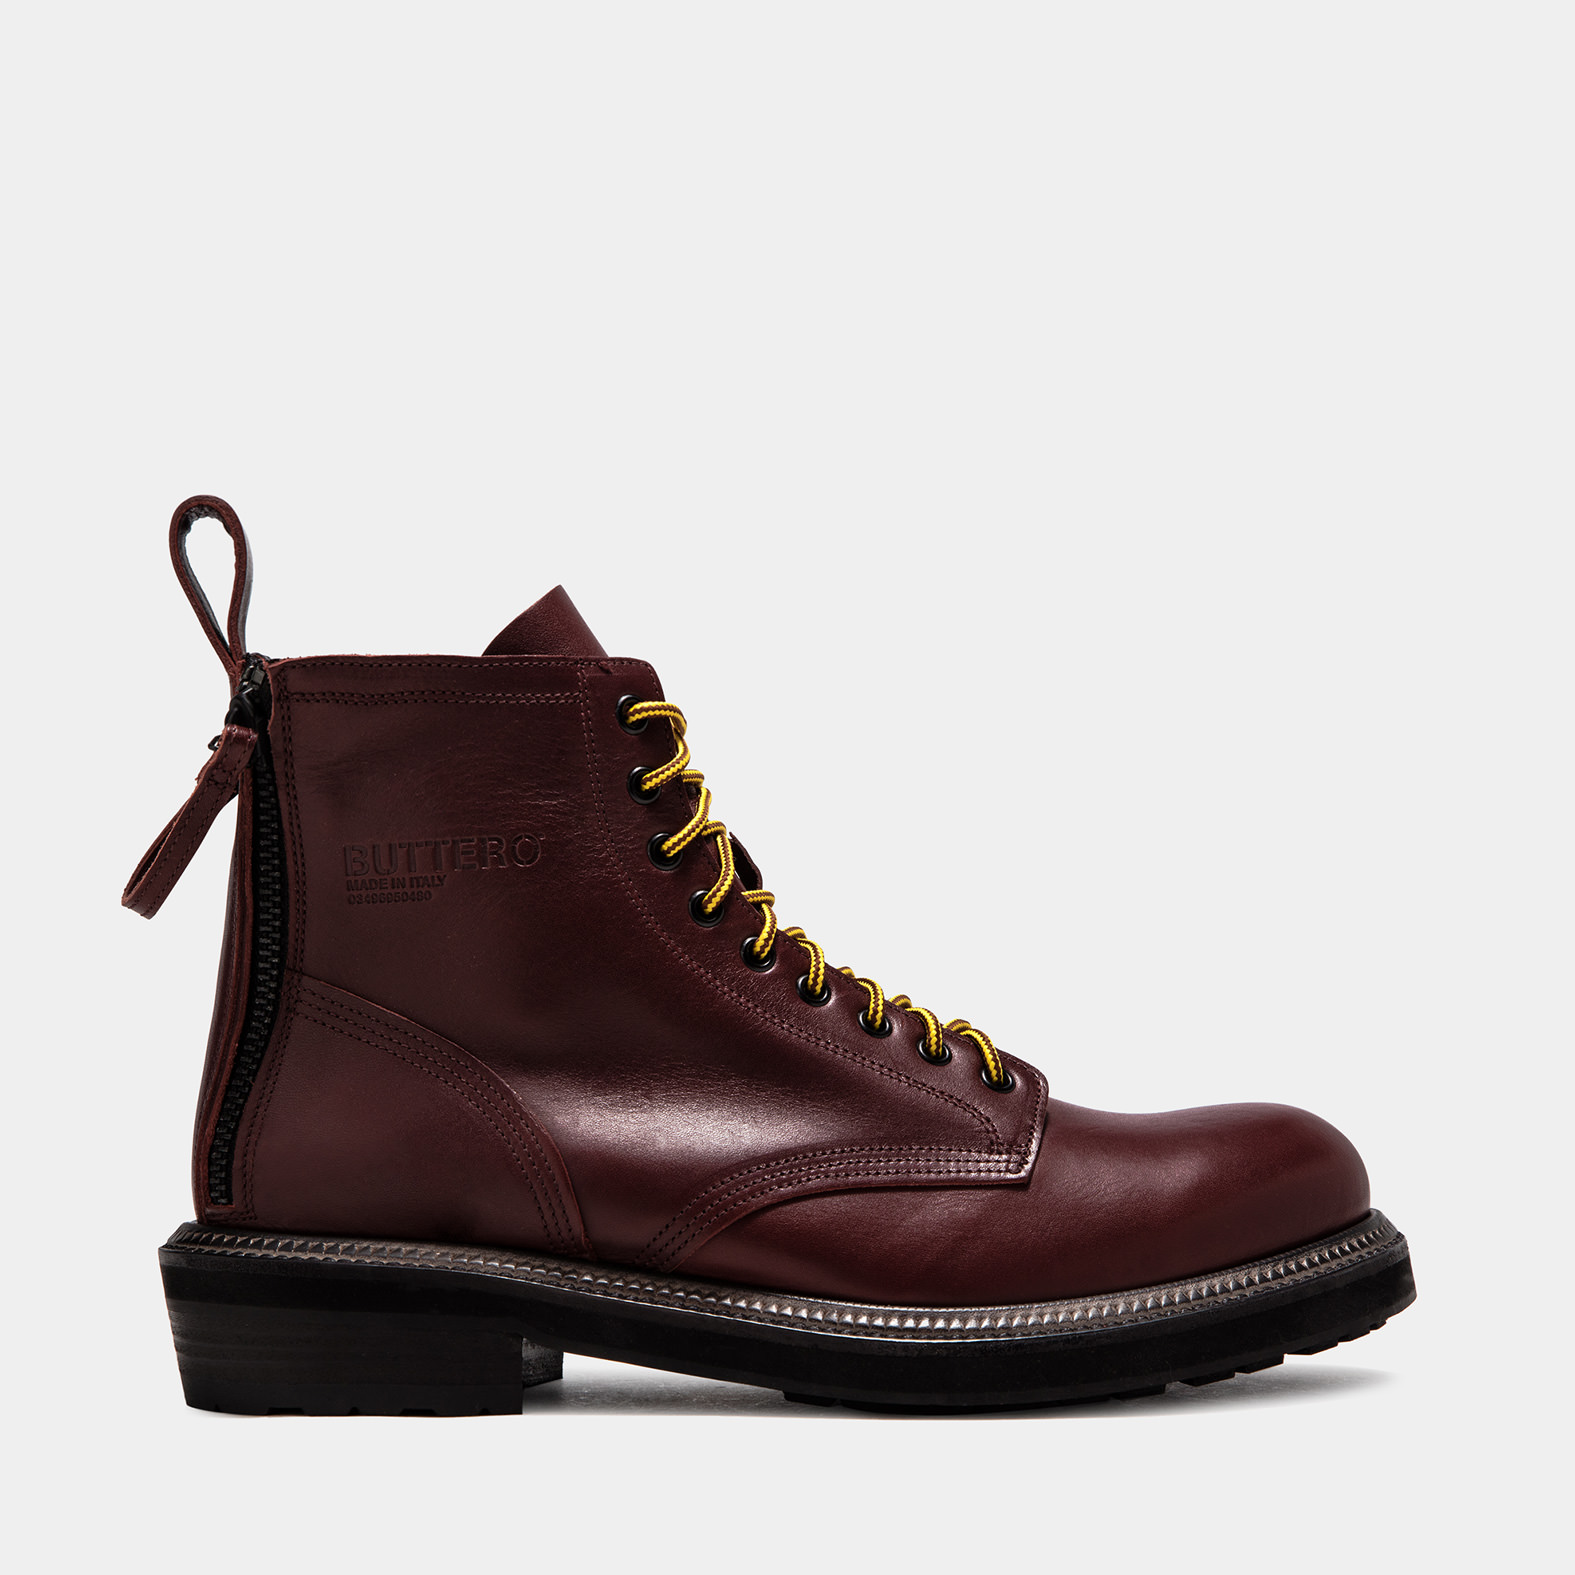 BUTTERO: CARGO BOOTS IN DARK CHILE LEATHER PULL EFFECT LEATHER